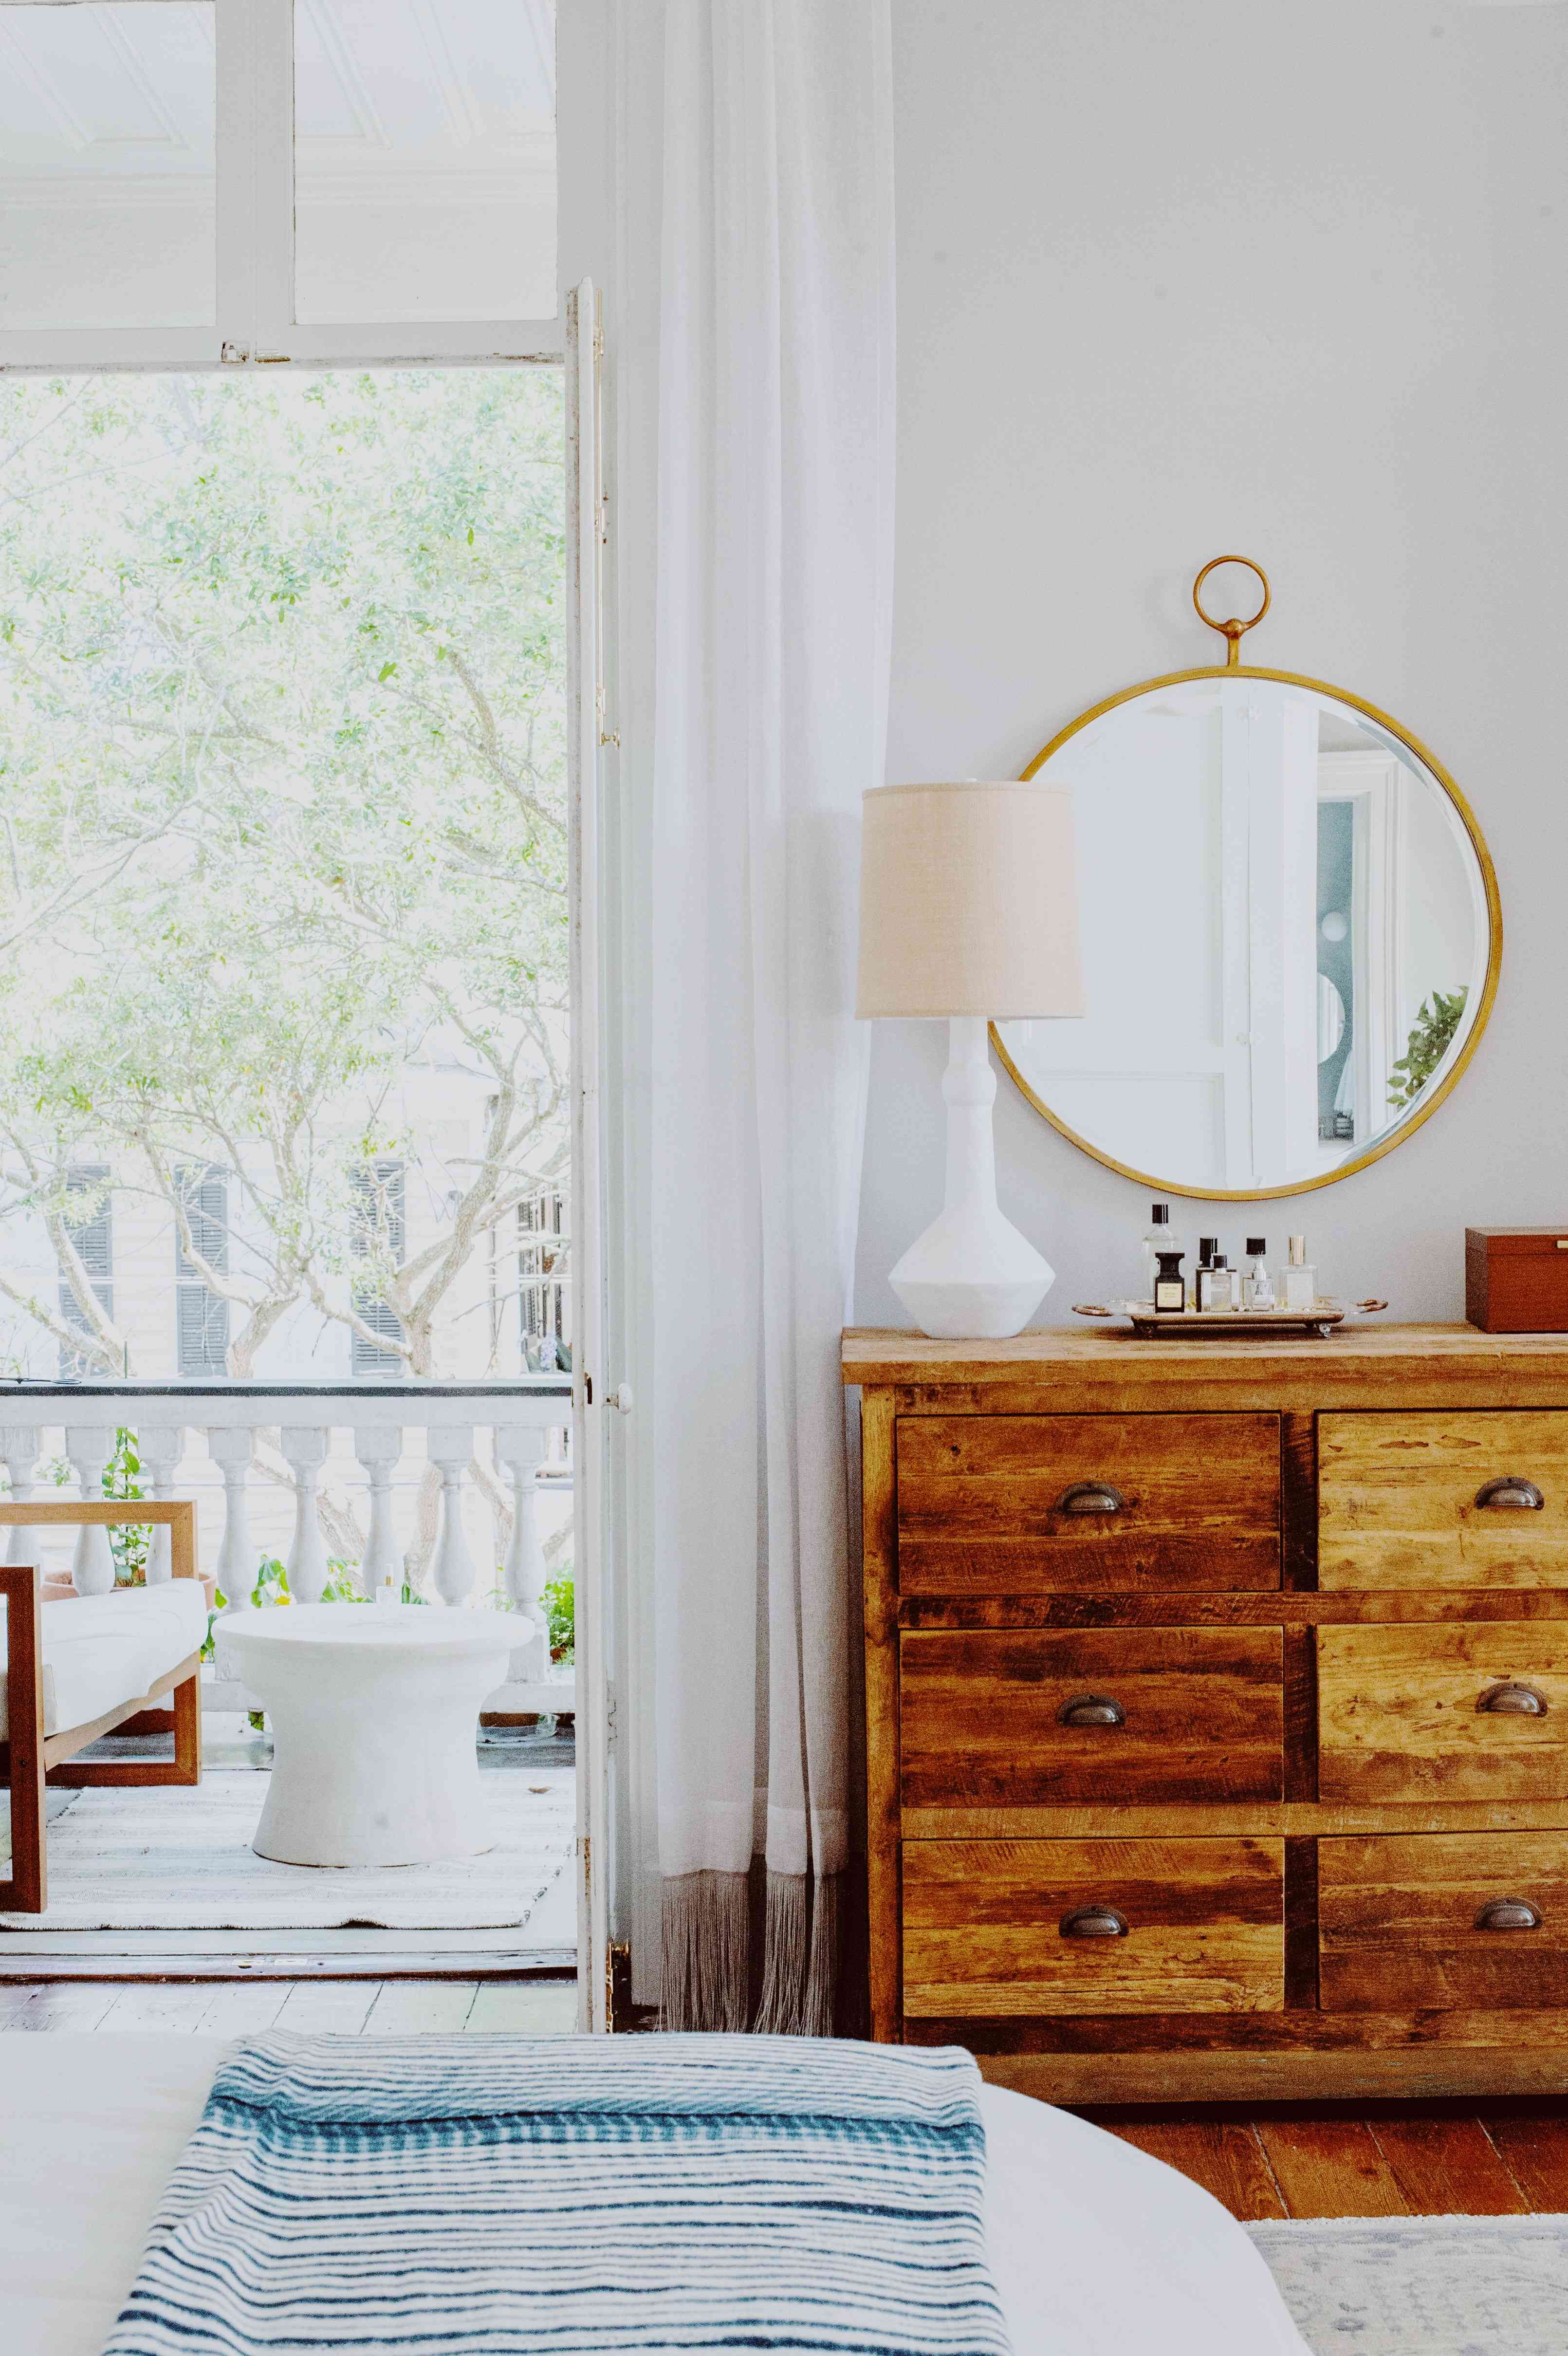 Amanda Greeley home tour - bedroom with patina dresser and balcony